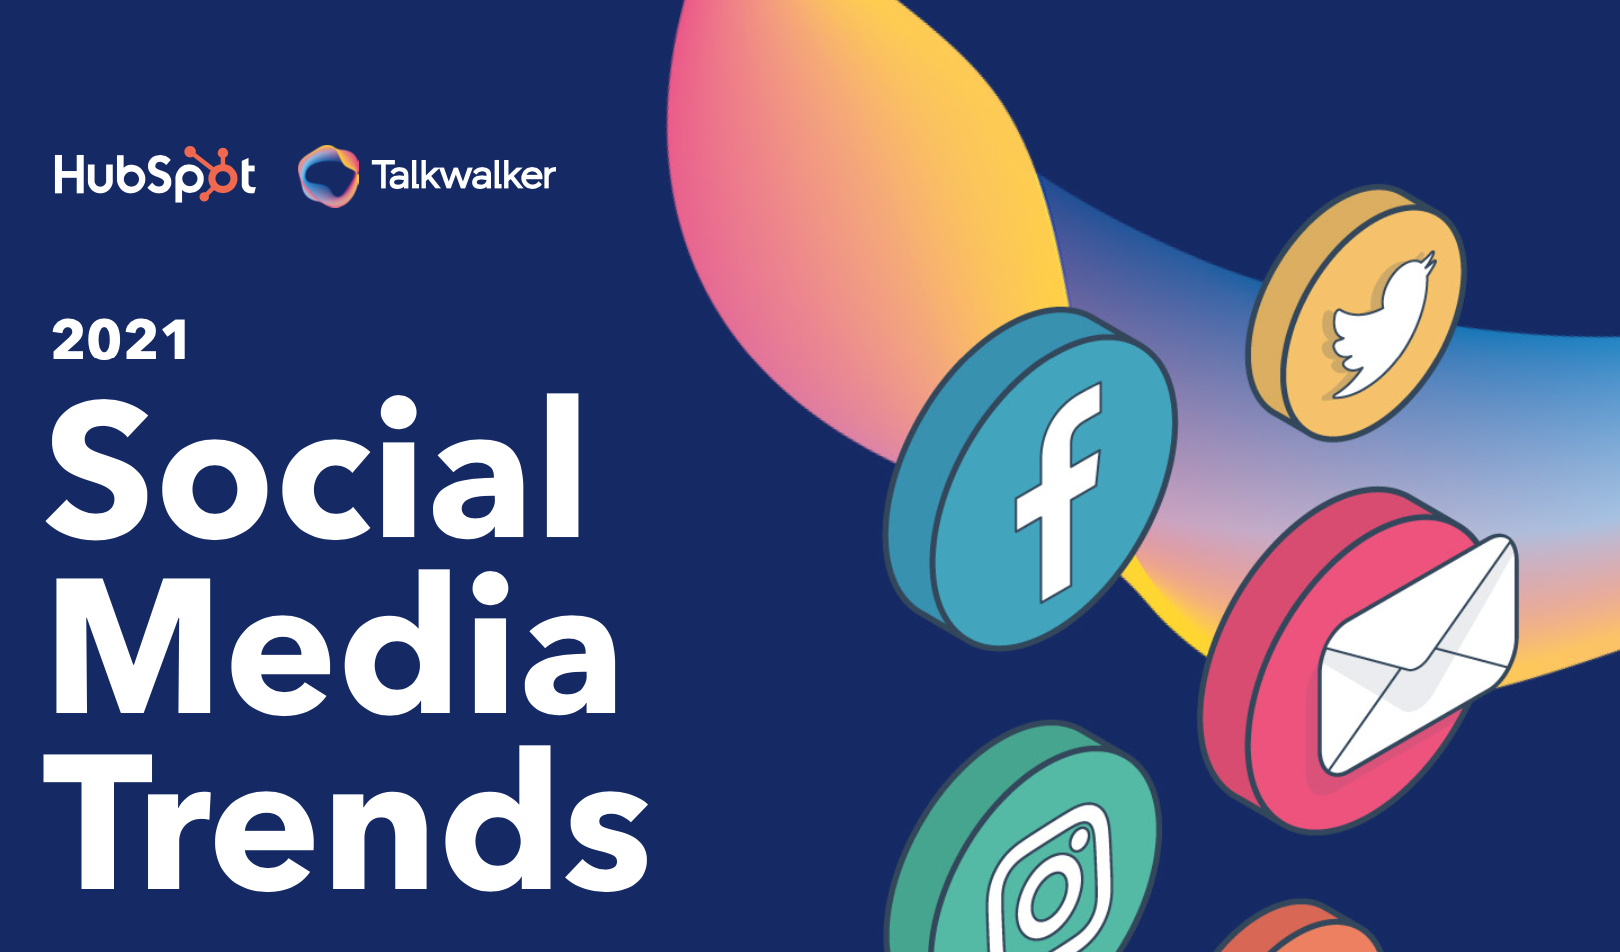 talkwalkers-report-highlights-the-trends-that-will-dominate-2021